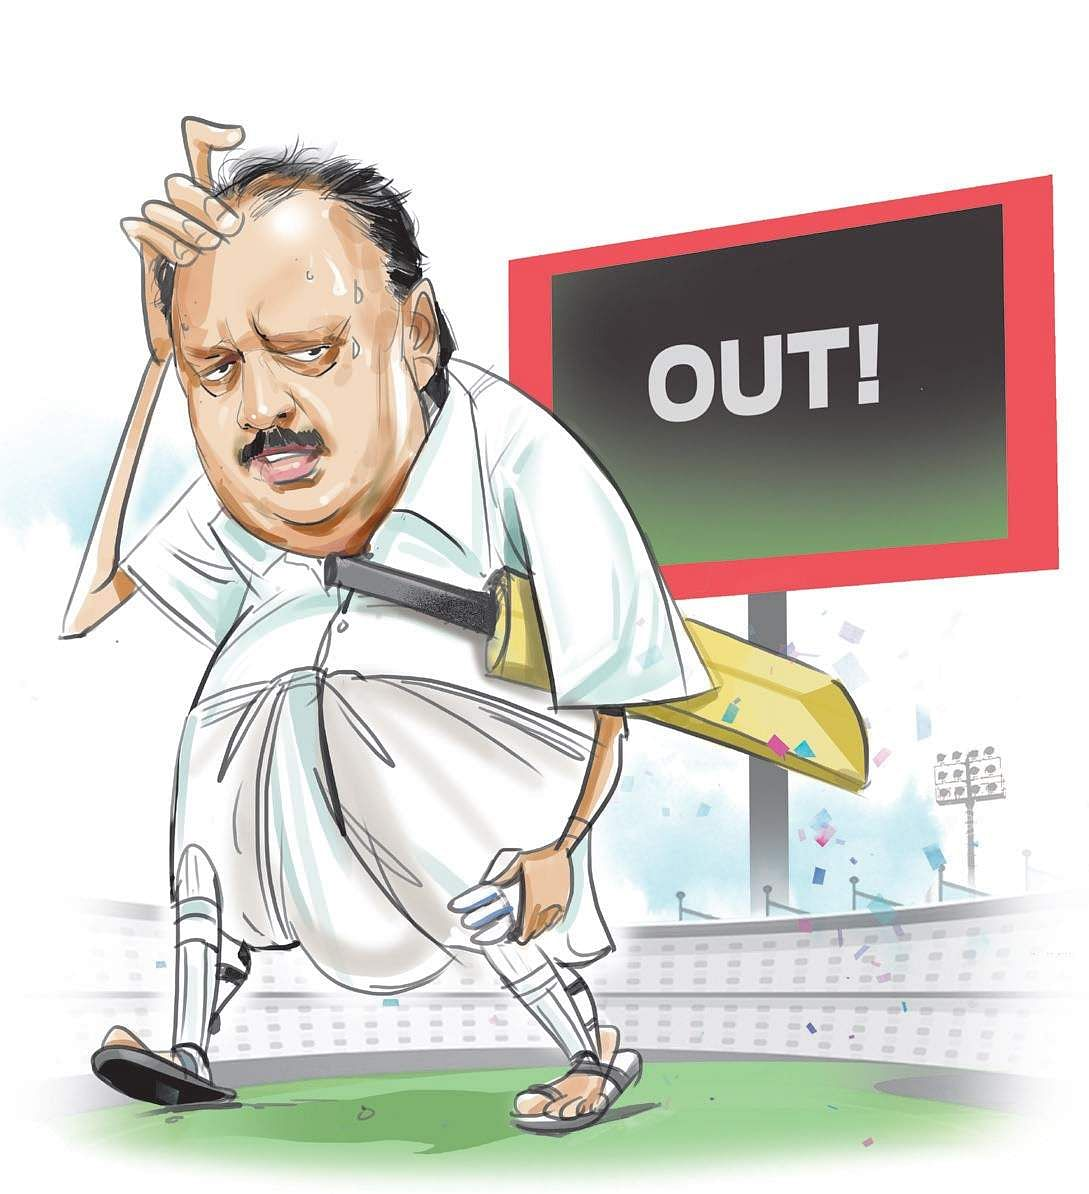 Judgment out; nothing in favour of Thomas Chandy